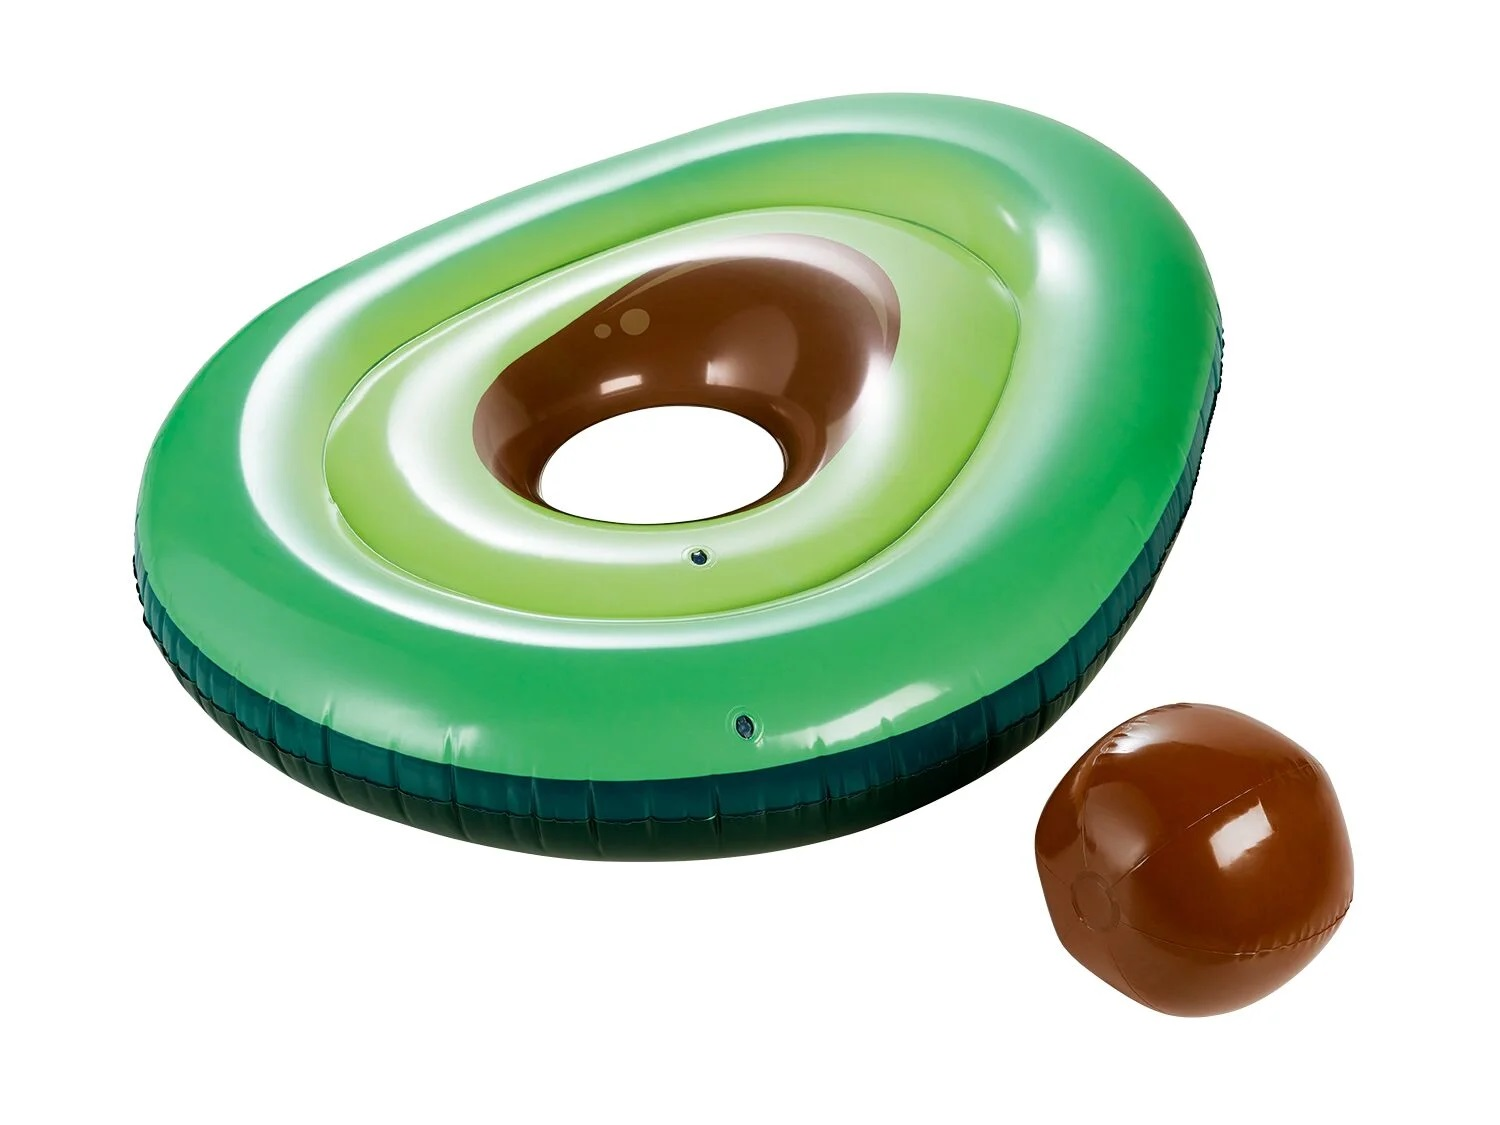 Colchón inflable aguacate